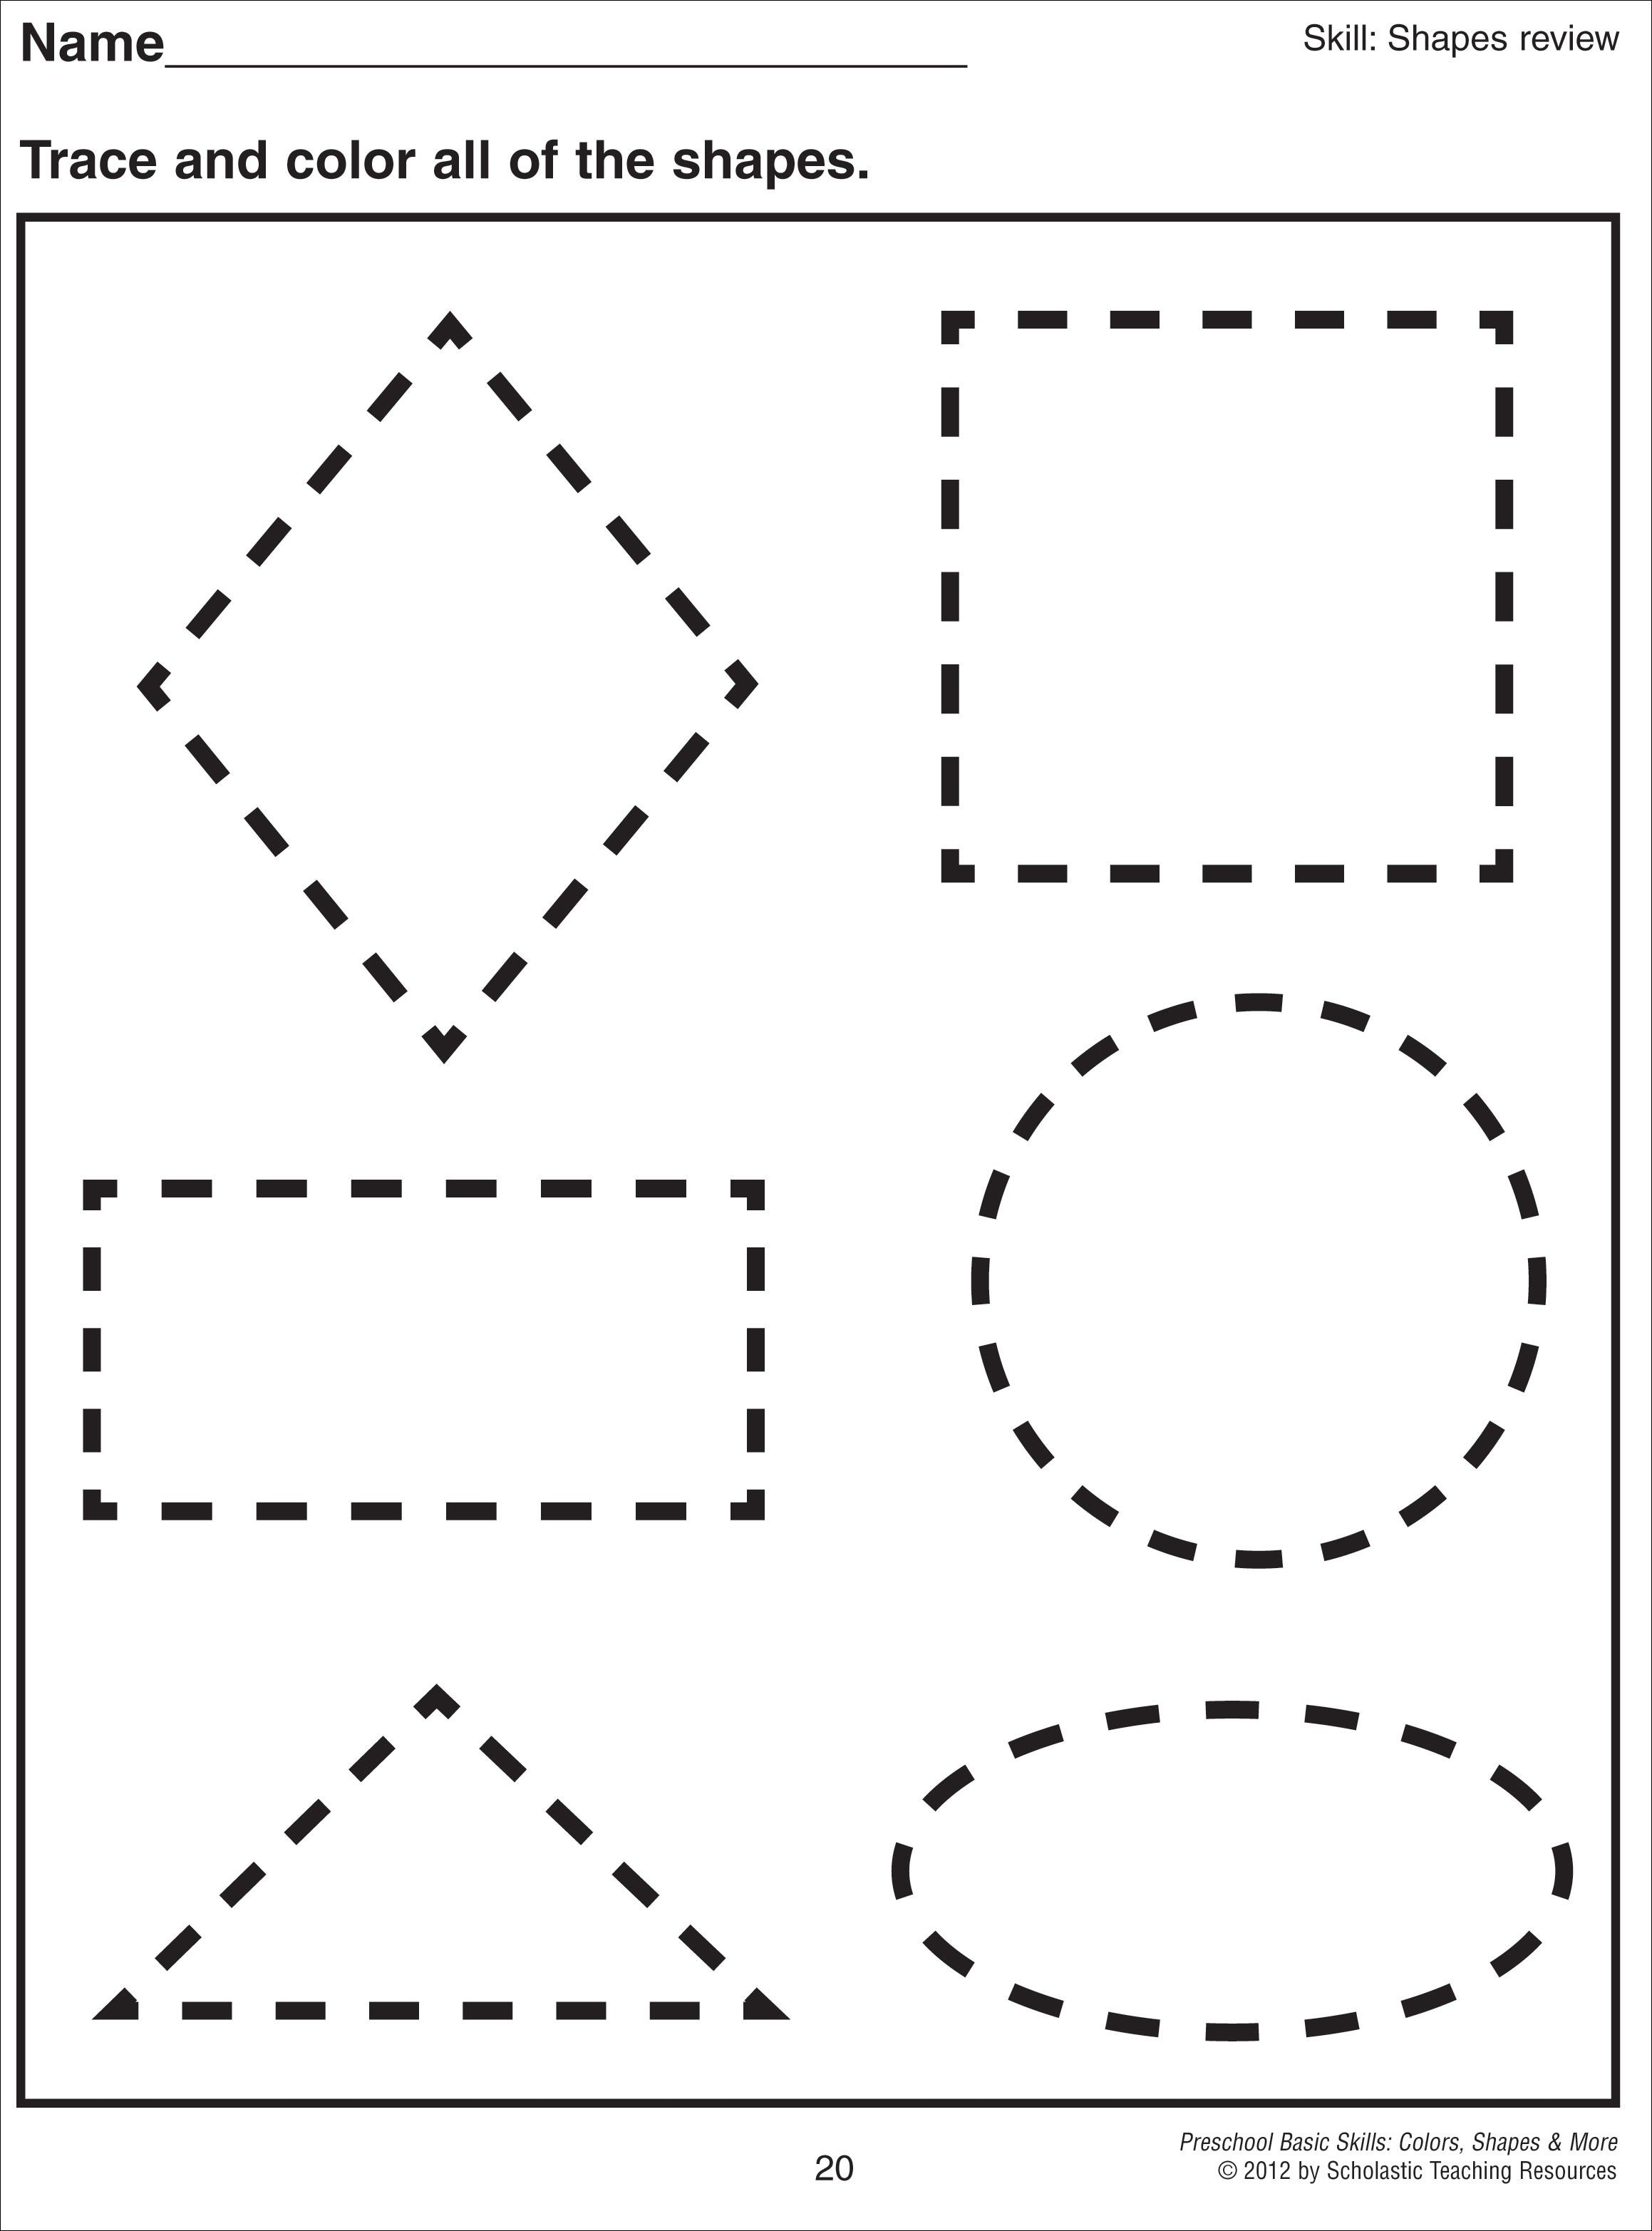 Math Worksheet 1000 Images About Preschool Shapes On Pinterest Shape Shapes Worksheet Kindergarten Shape Tracing Worksheets Shape Worksheets For Preschool